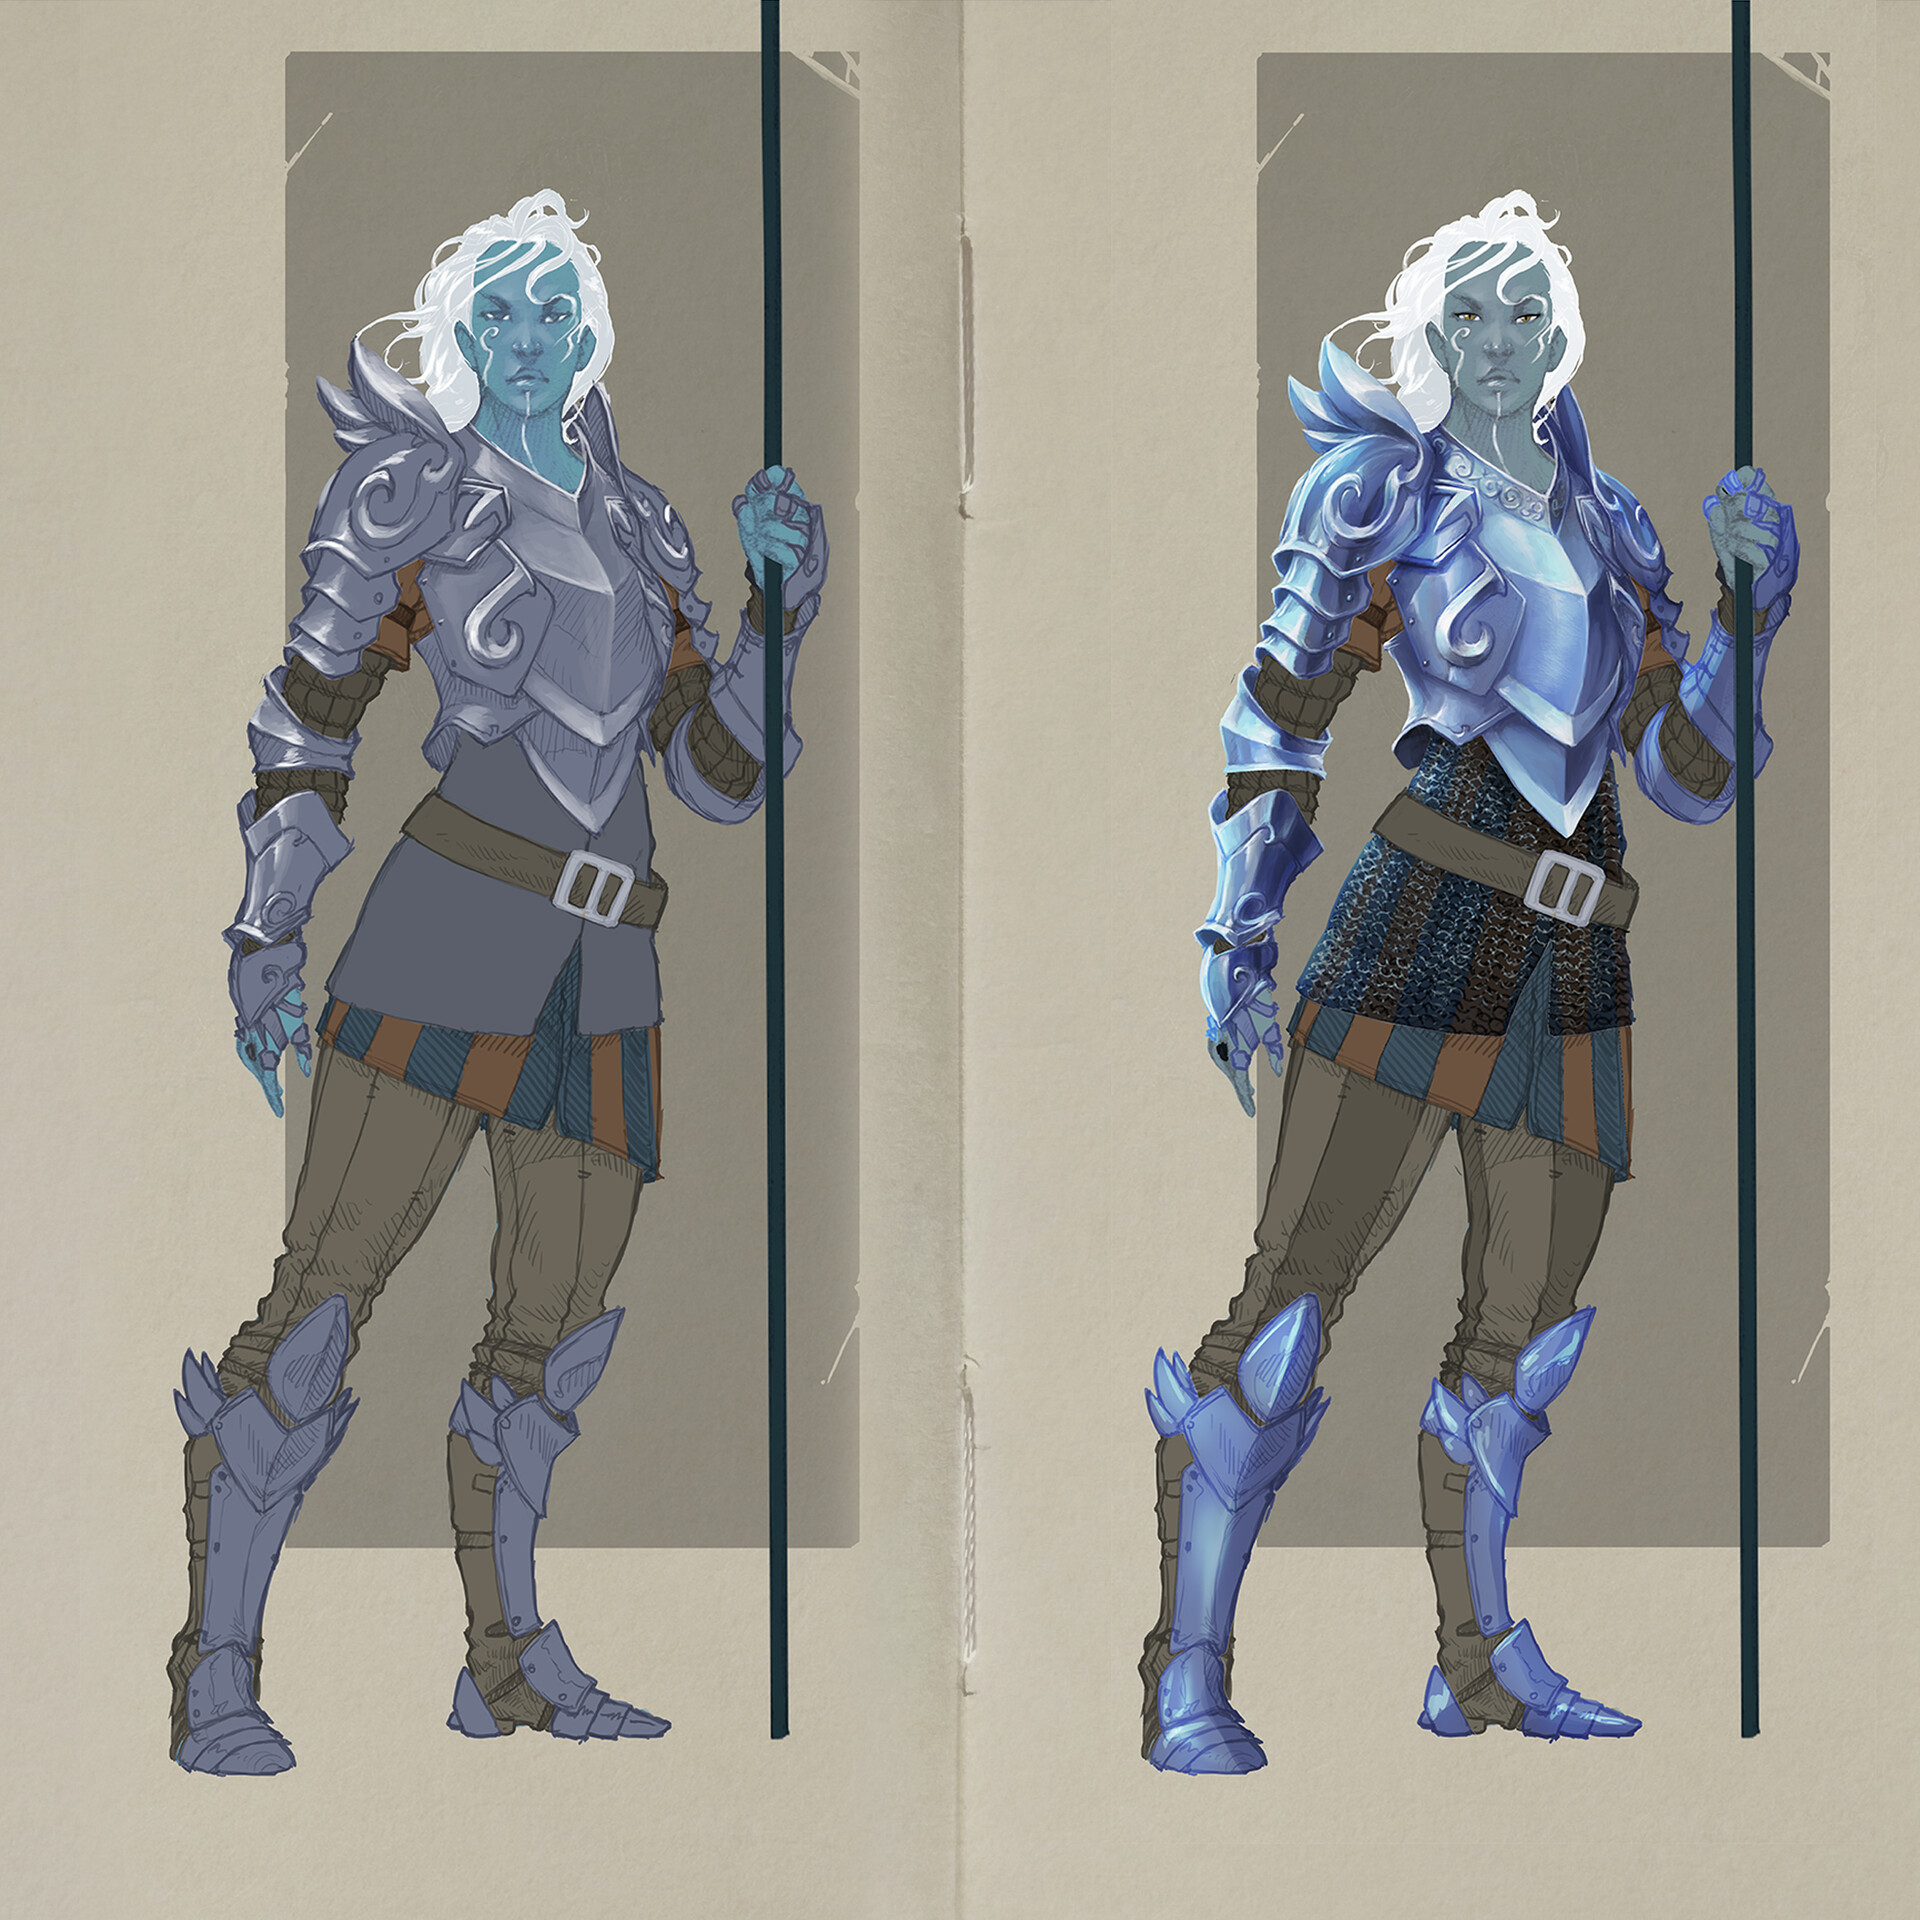 armor design and flat colors, started with the armor render